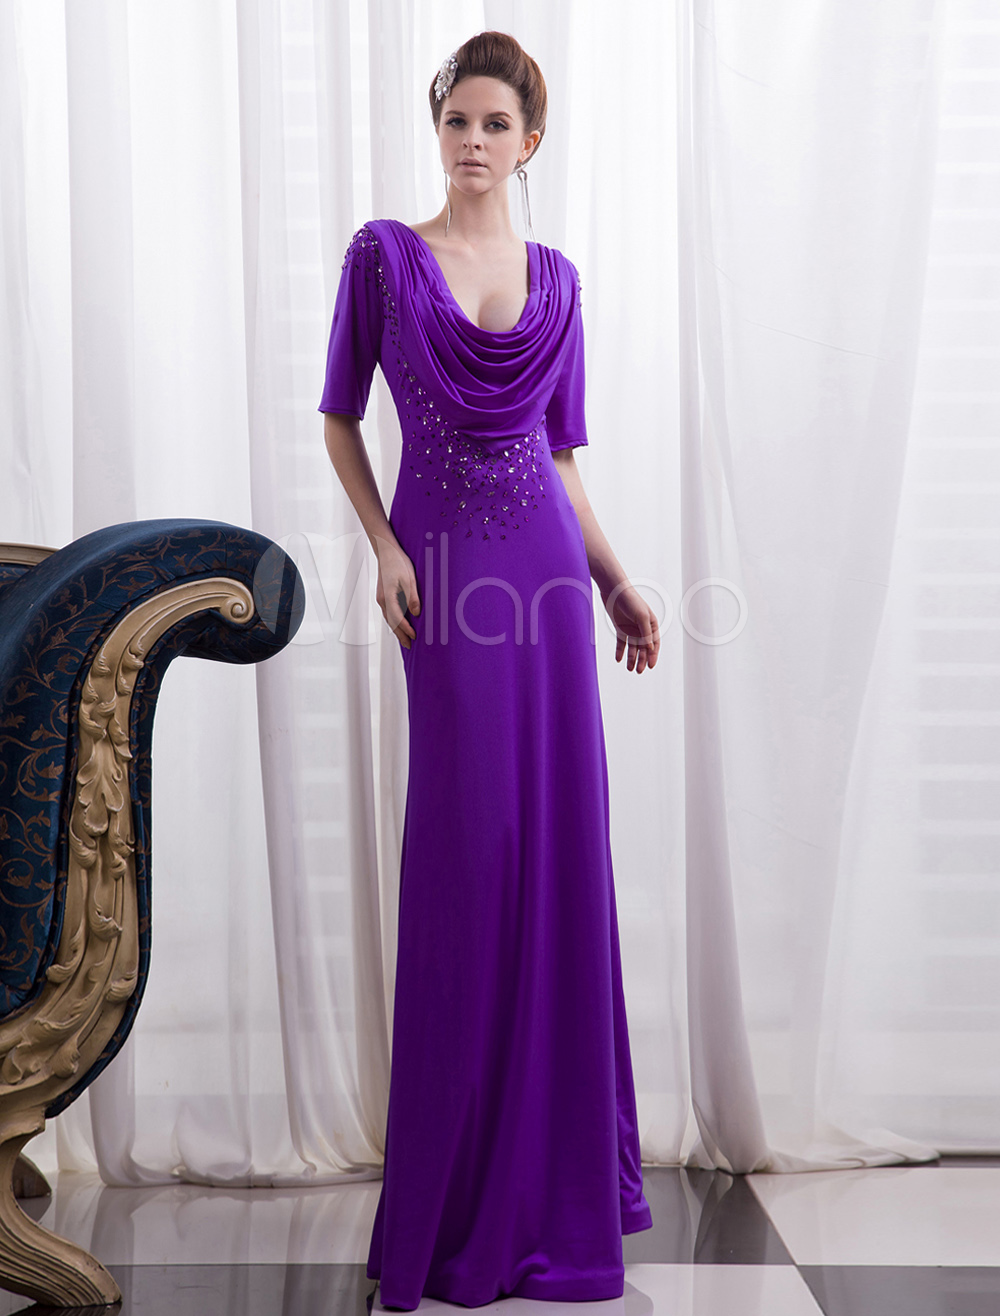 Lavender Evening Dress Beaded Cowl Neck Mother Of The Bride Dress Half Sleeves Sheath Party Dress Milanoo